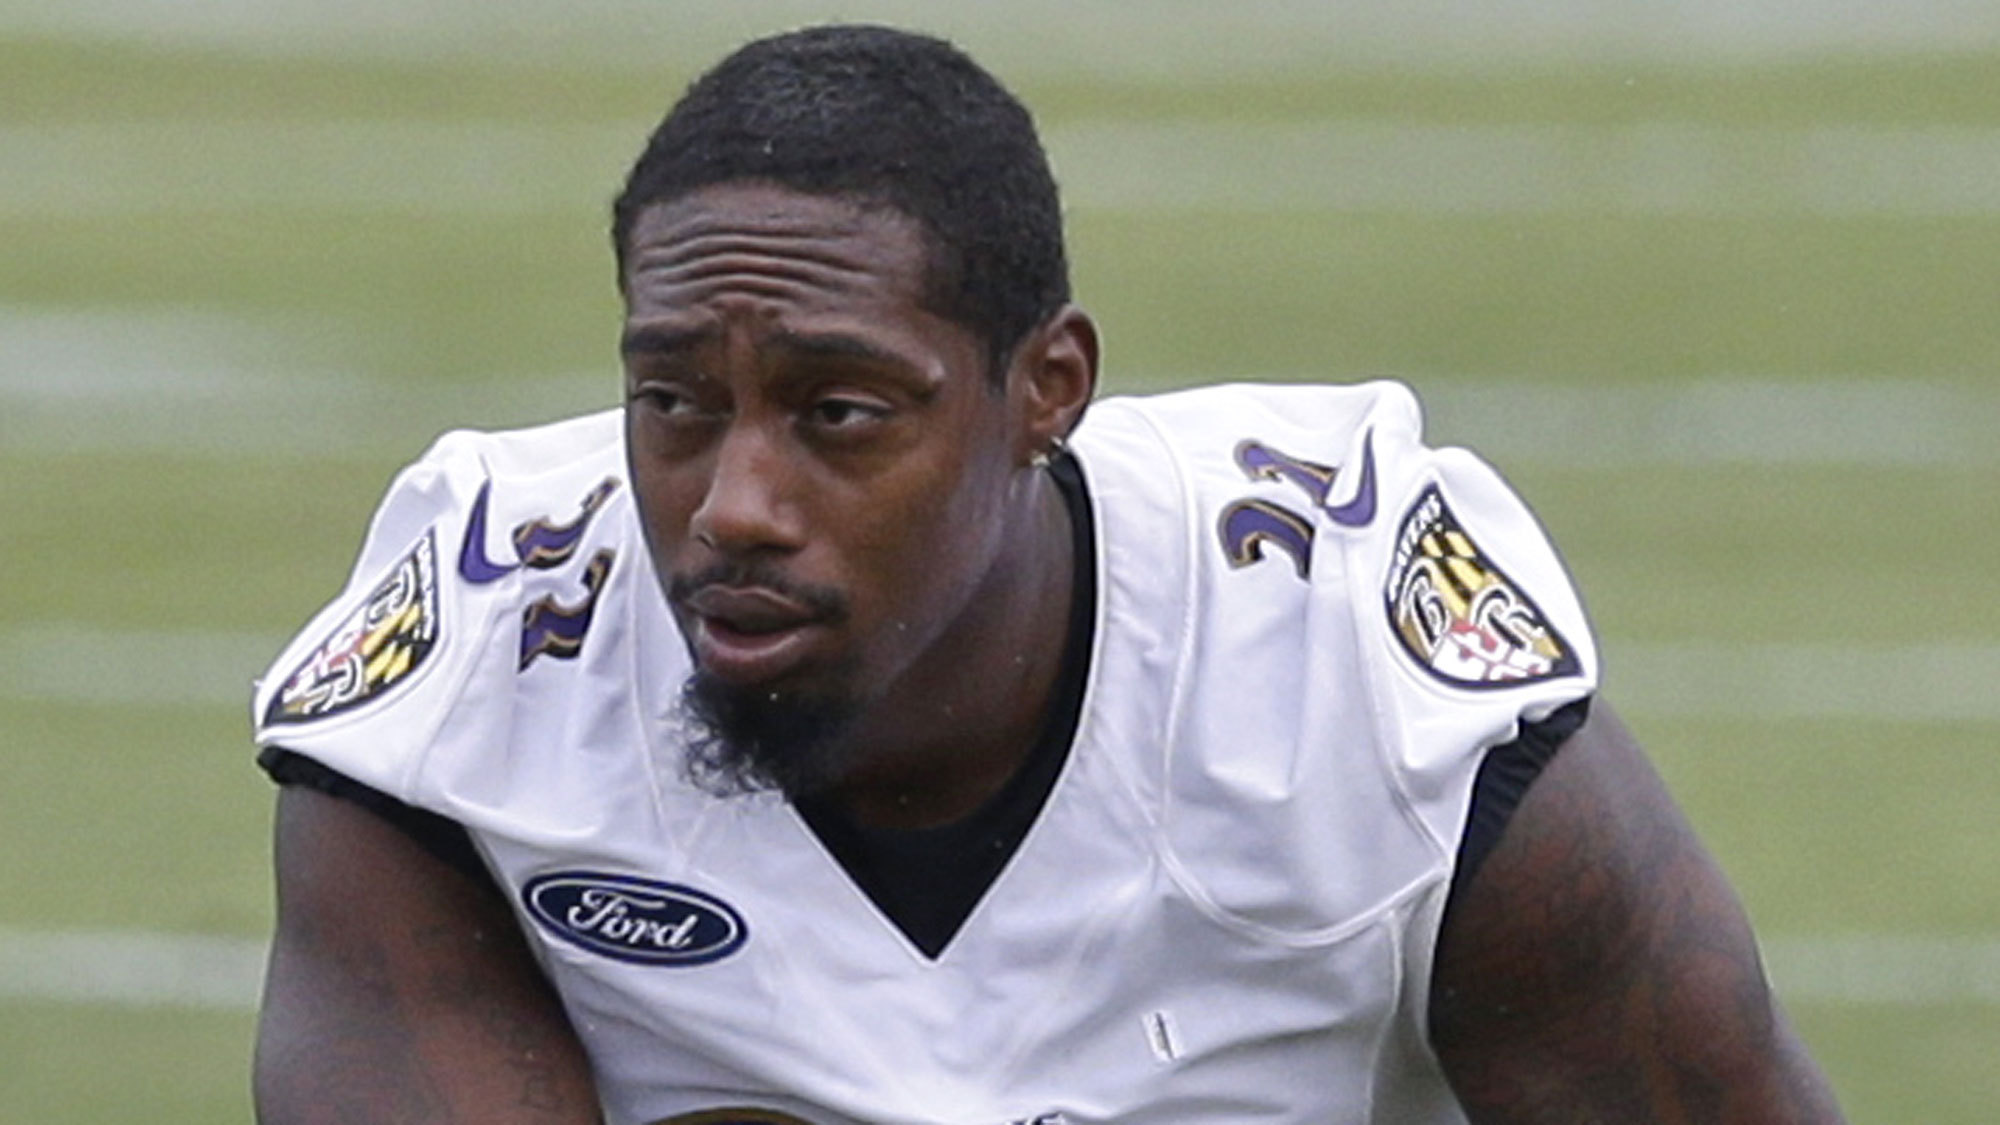 bal-ravens-sign-will-hill-to-twoyear-deal-20150827